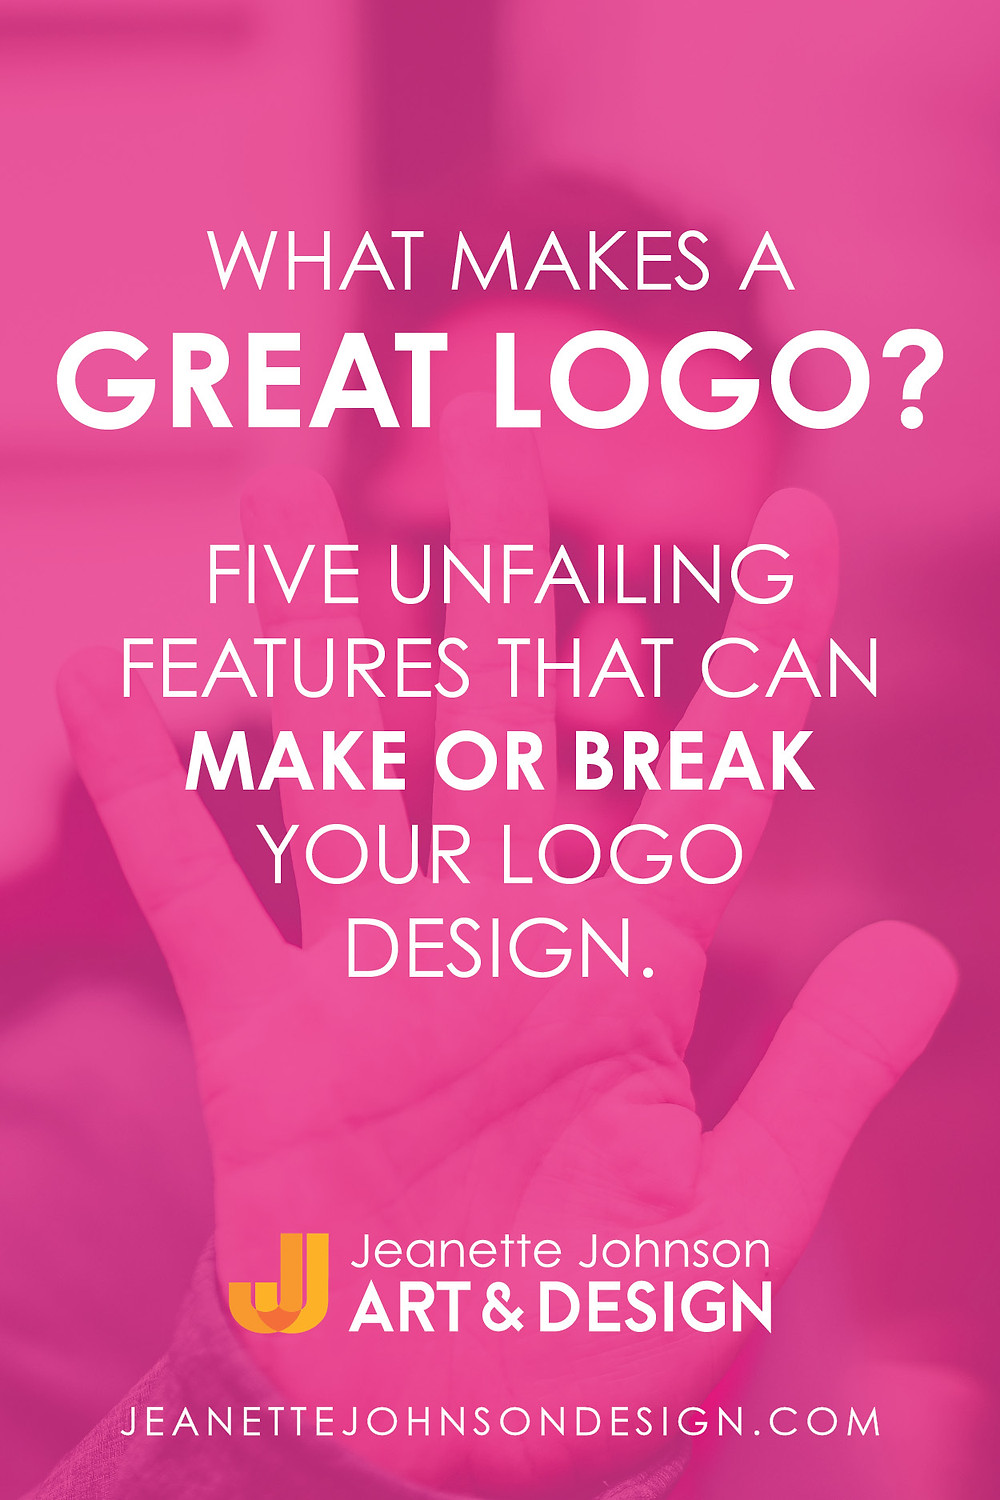 Pin image for What Makes a Great Logo article.